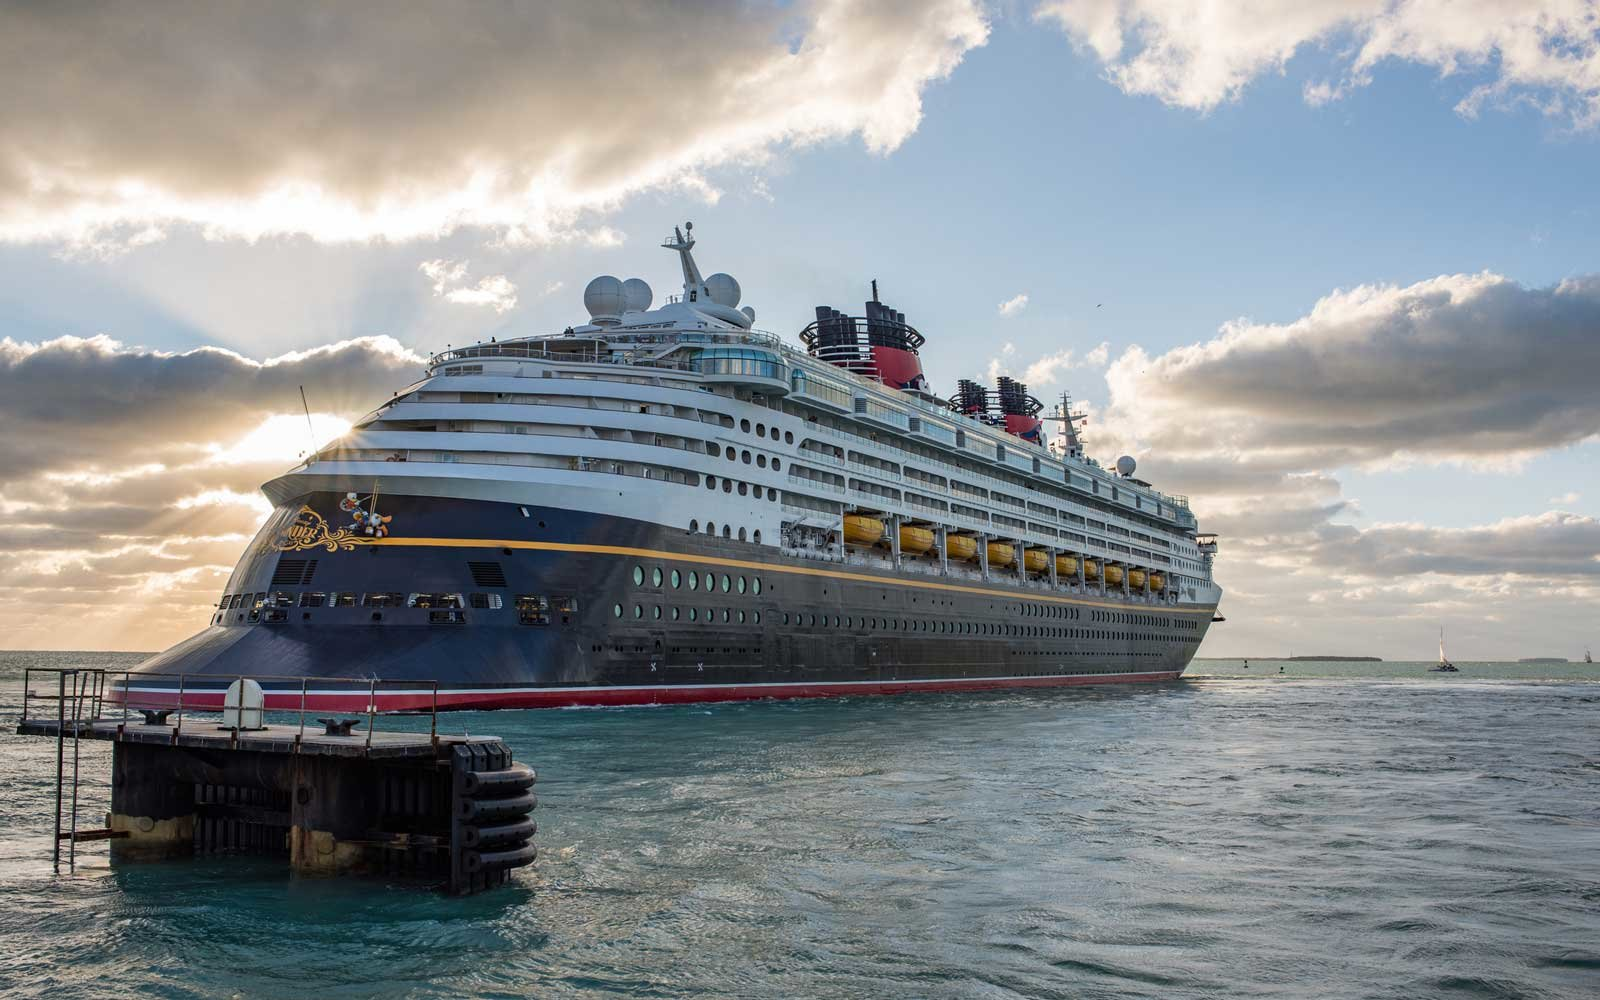 Disney Cruise Line Just Announced New Cruises For 2019